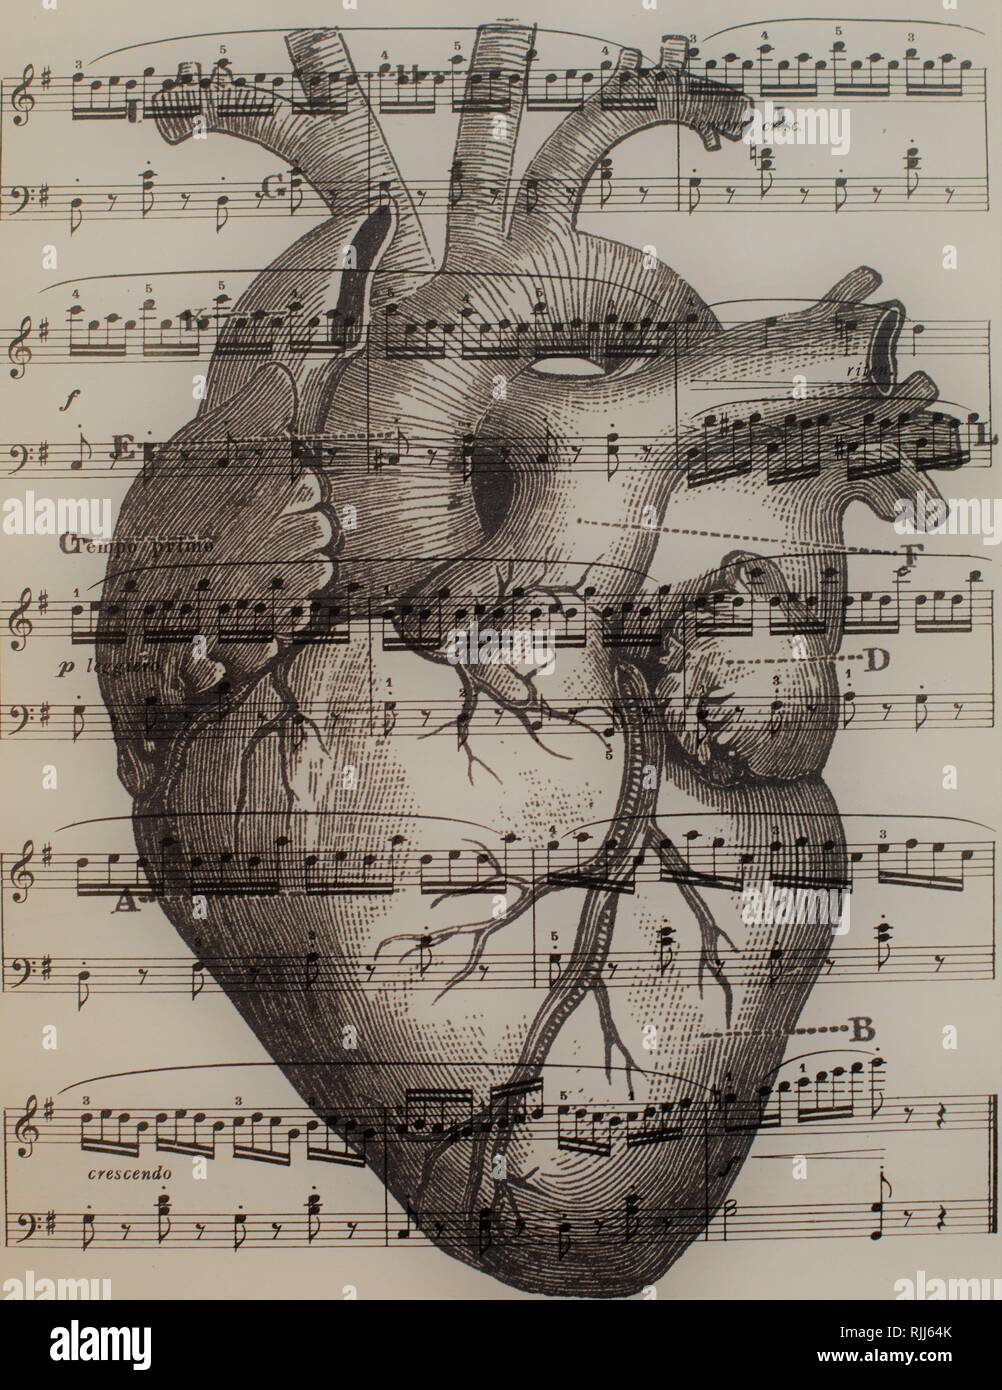 An anatomical heart combined with sheet music. - Stock Image